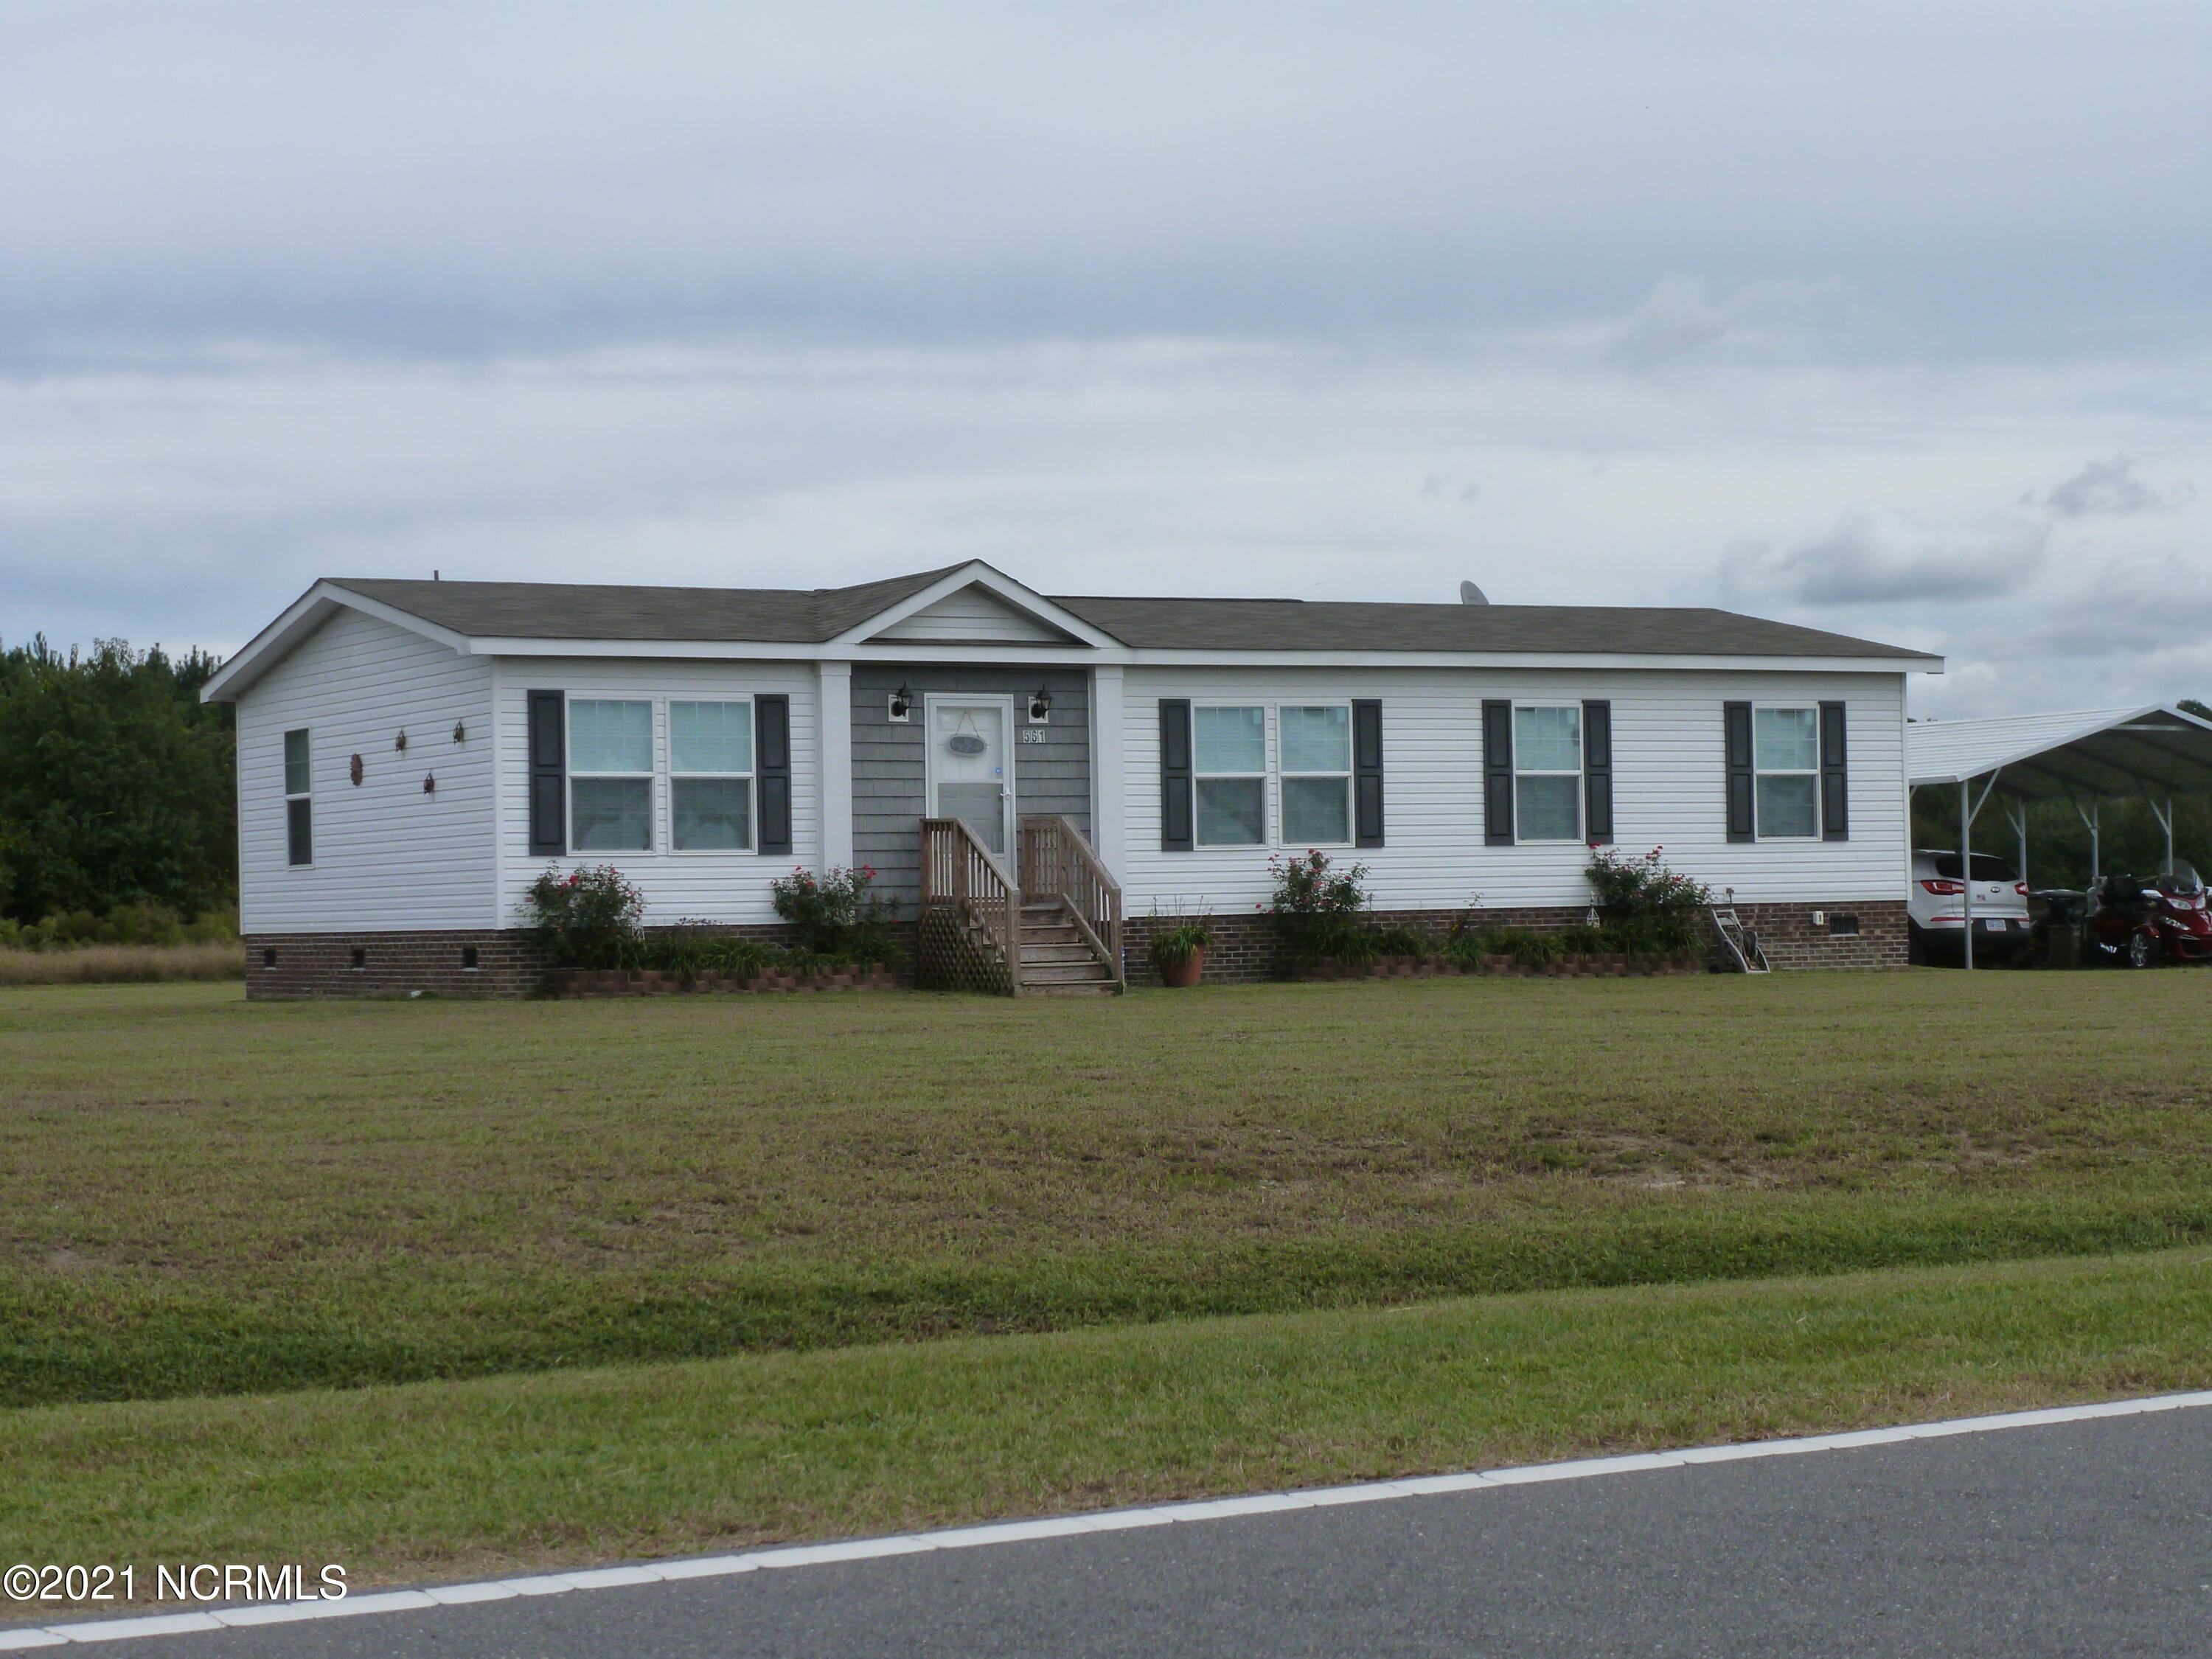 This is a Modular Home that is barely three years old! It has 3 bedrooms and 2 bathrooms. It sits on .86 acres and is right off of highway 24. The home has an open floor plan with carpet and vinyl throughout the home. There is a twelve by sixteen deck attached to the home. This home is in excellent condition and will not stay on the market long.